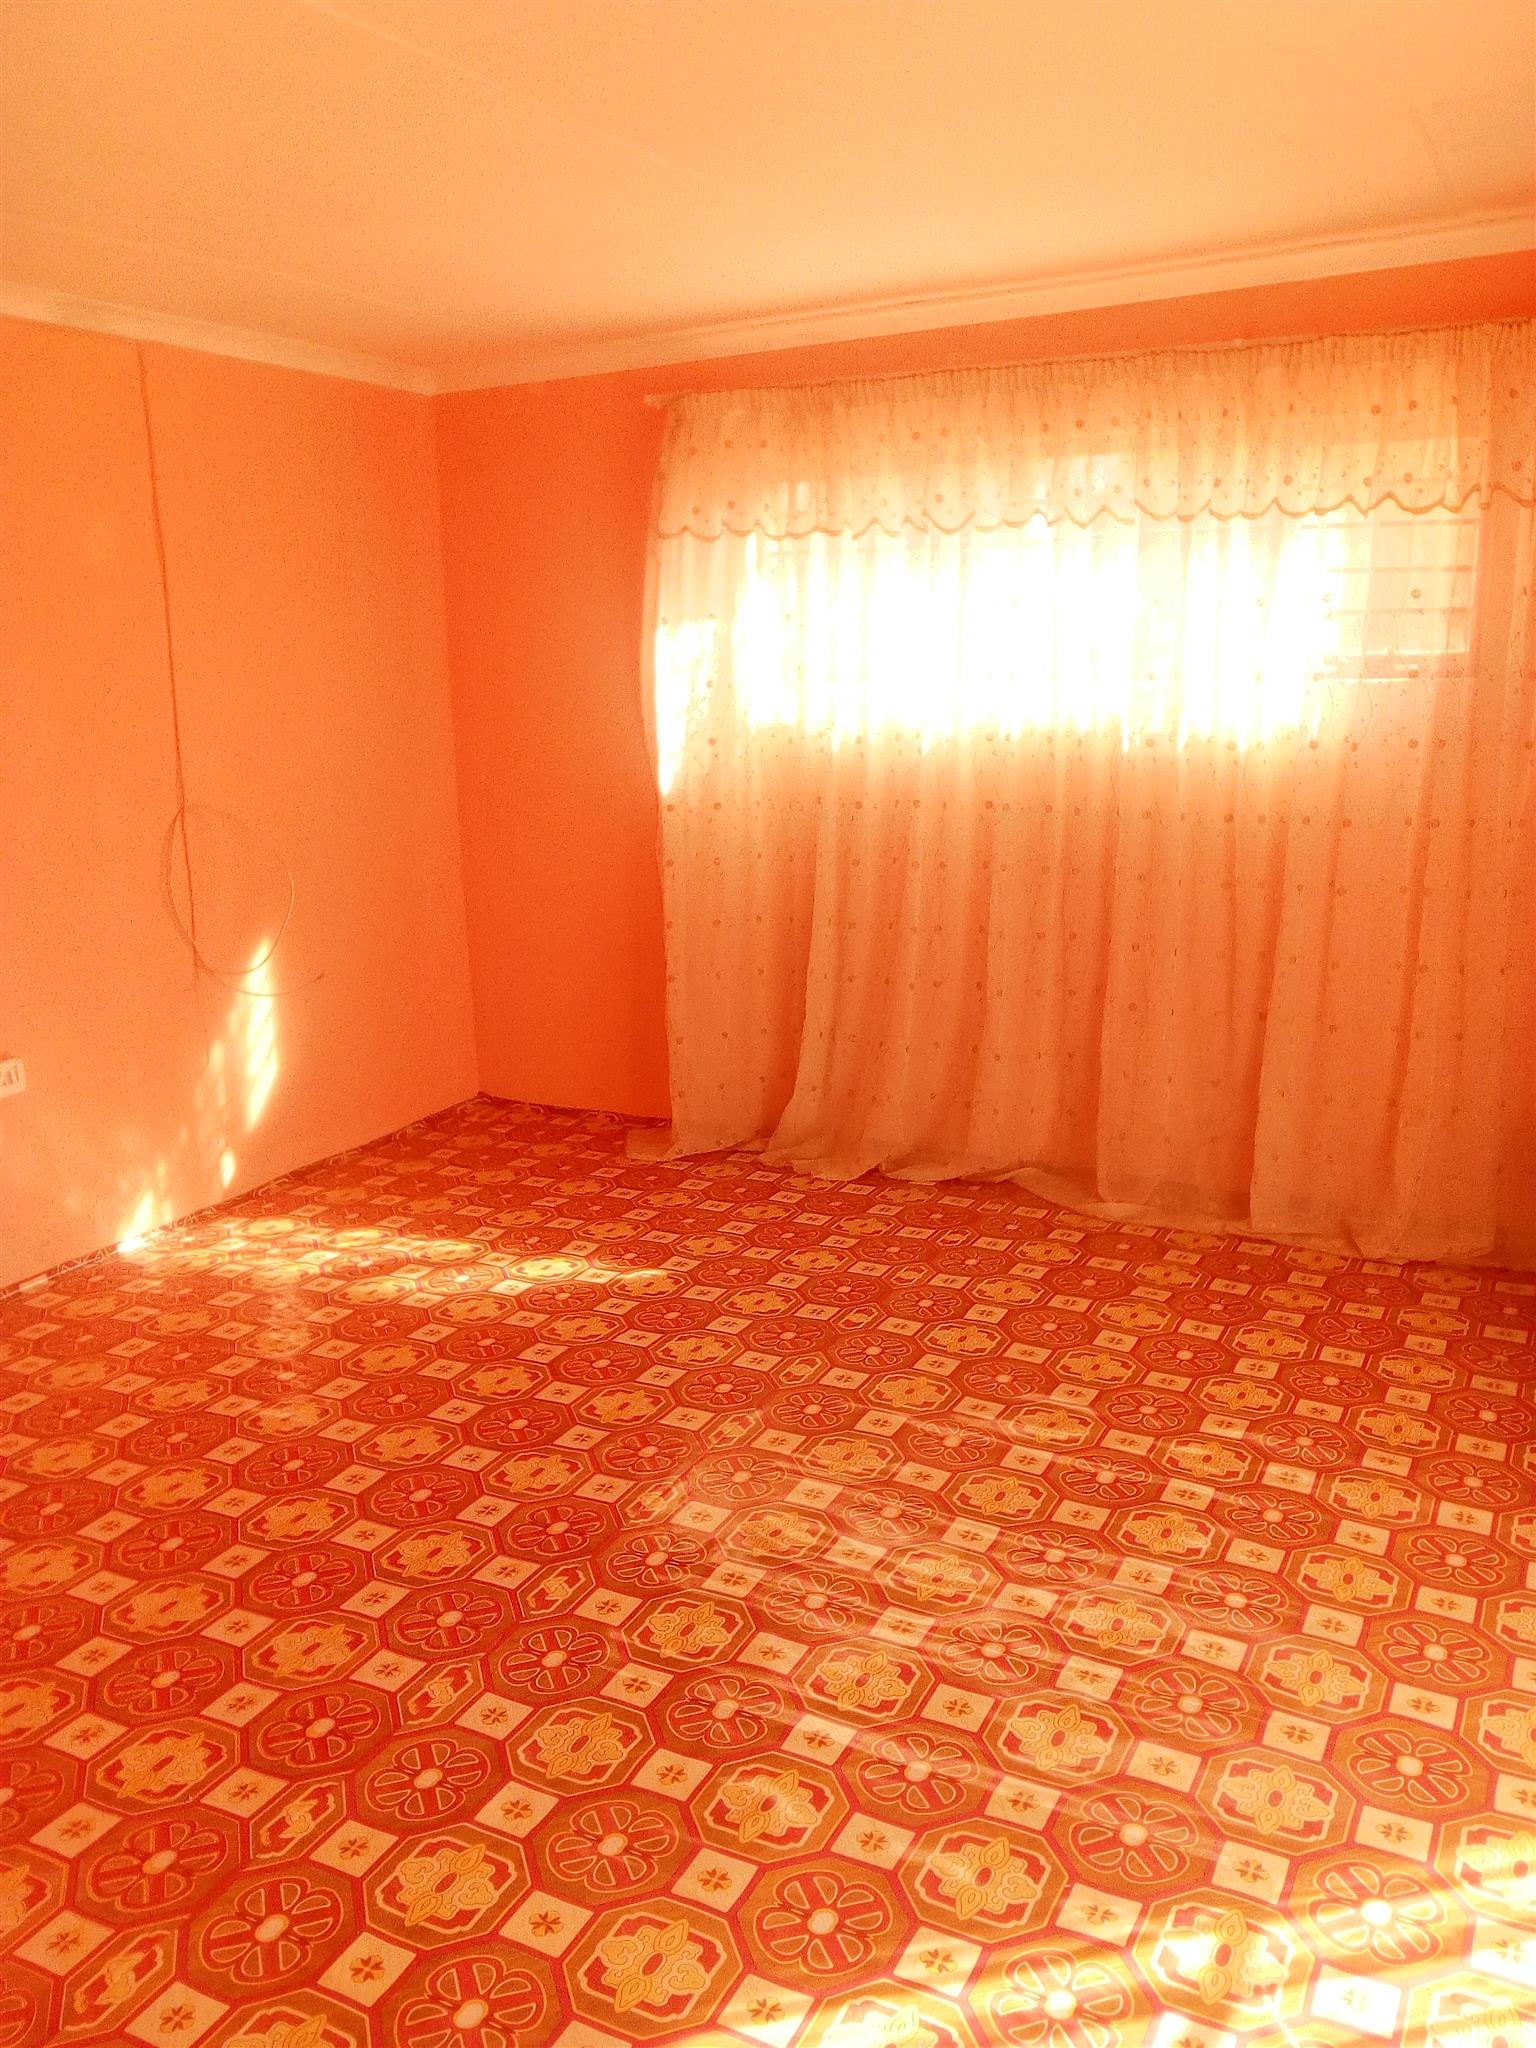 Rooms for rental at Kwaggasrand, Pretoria west